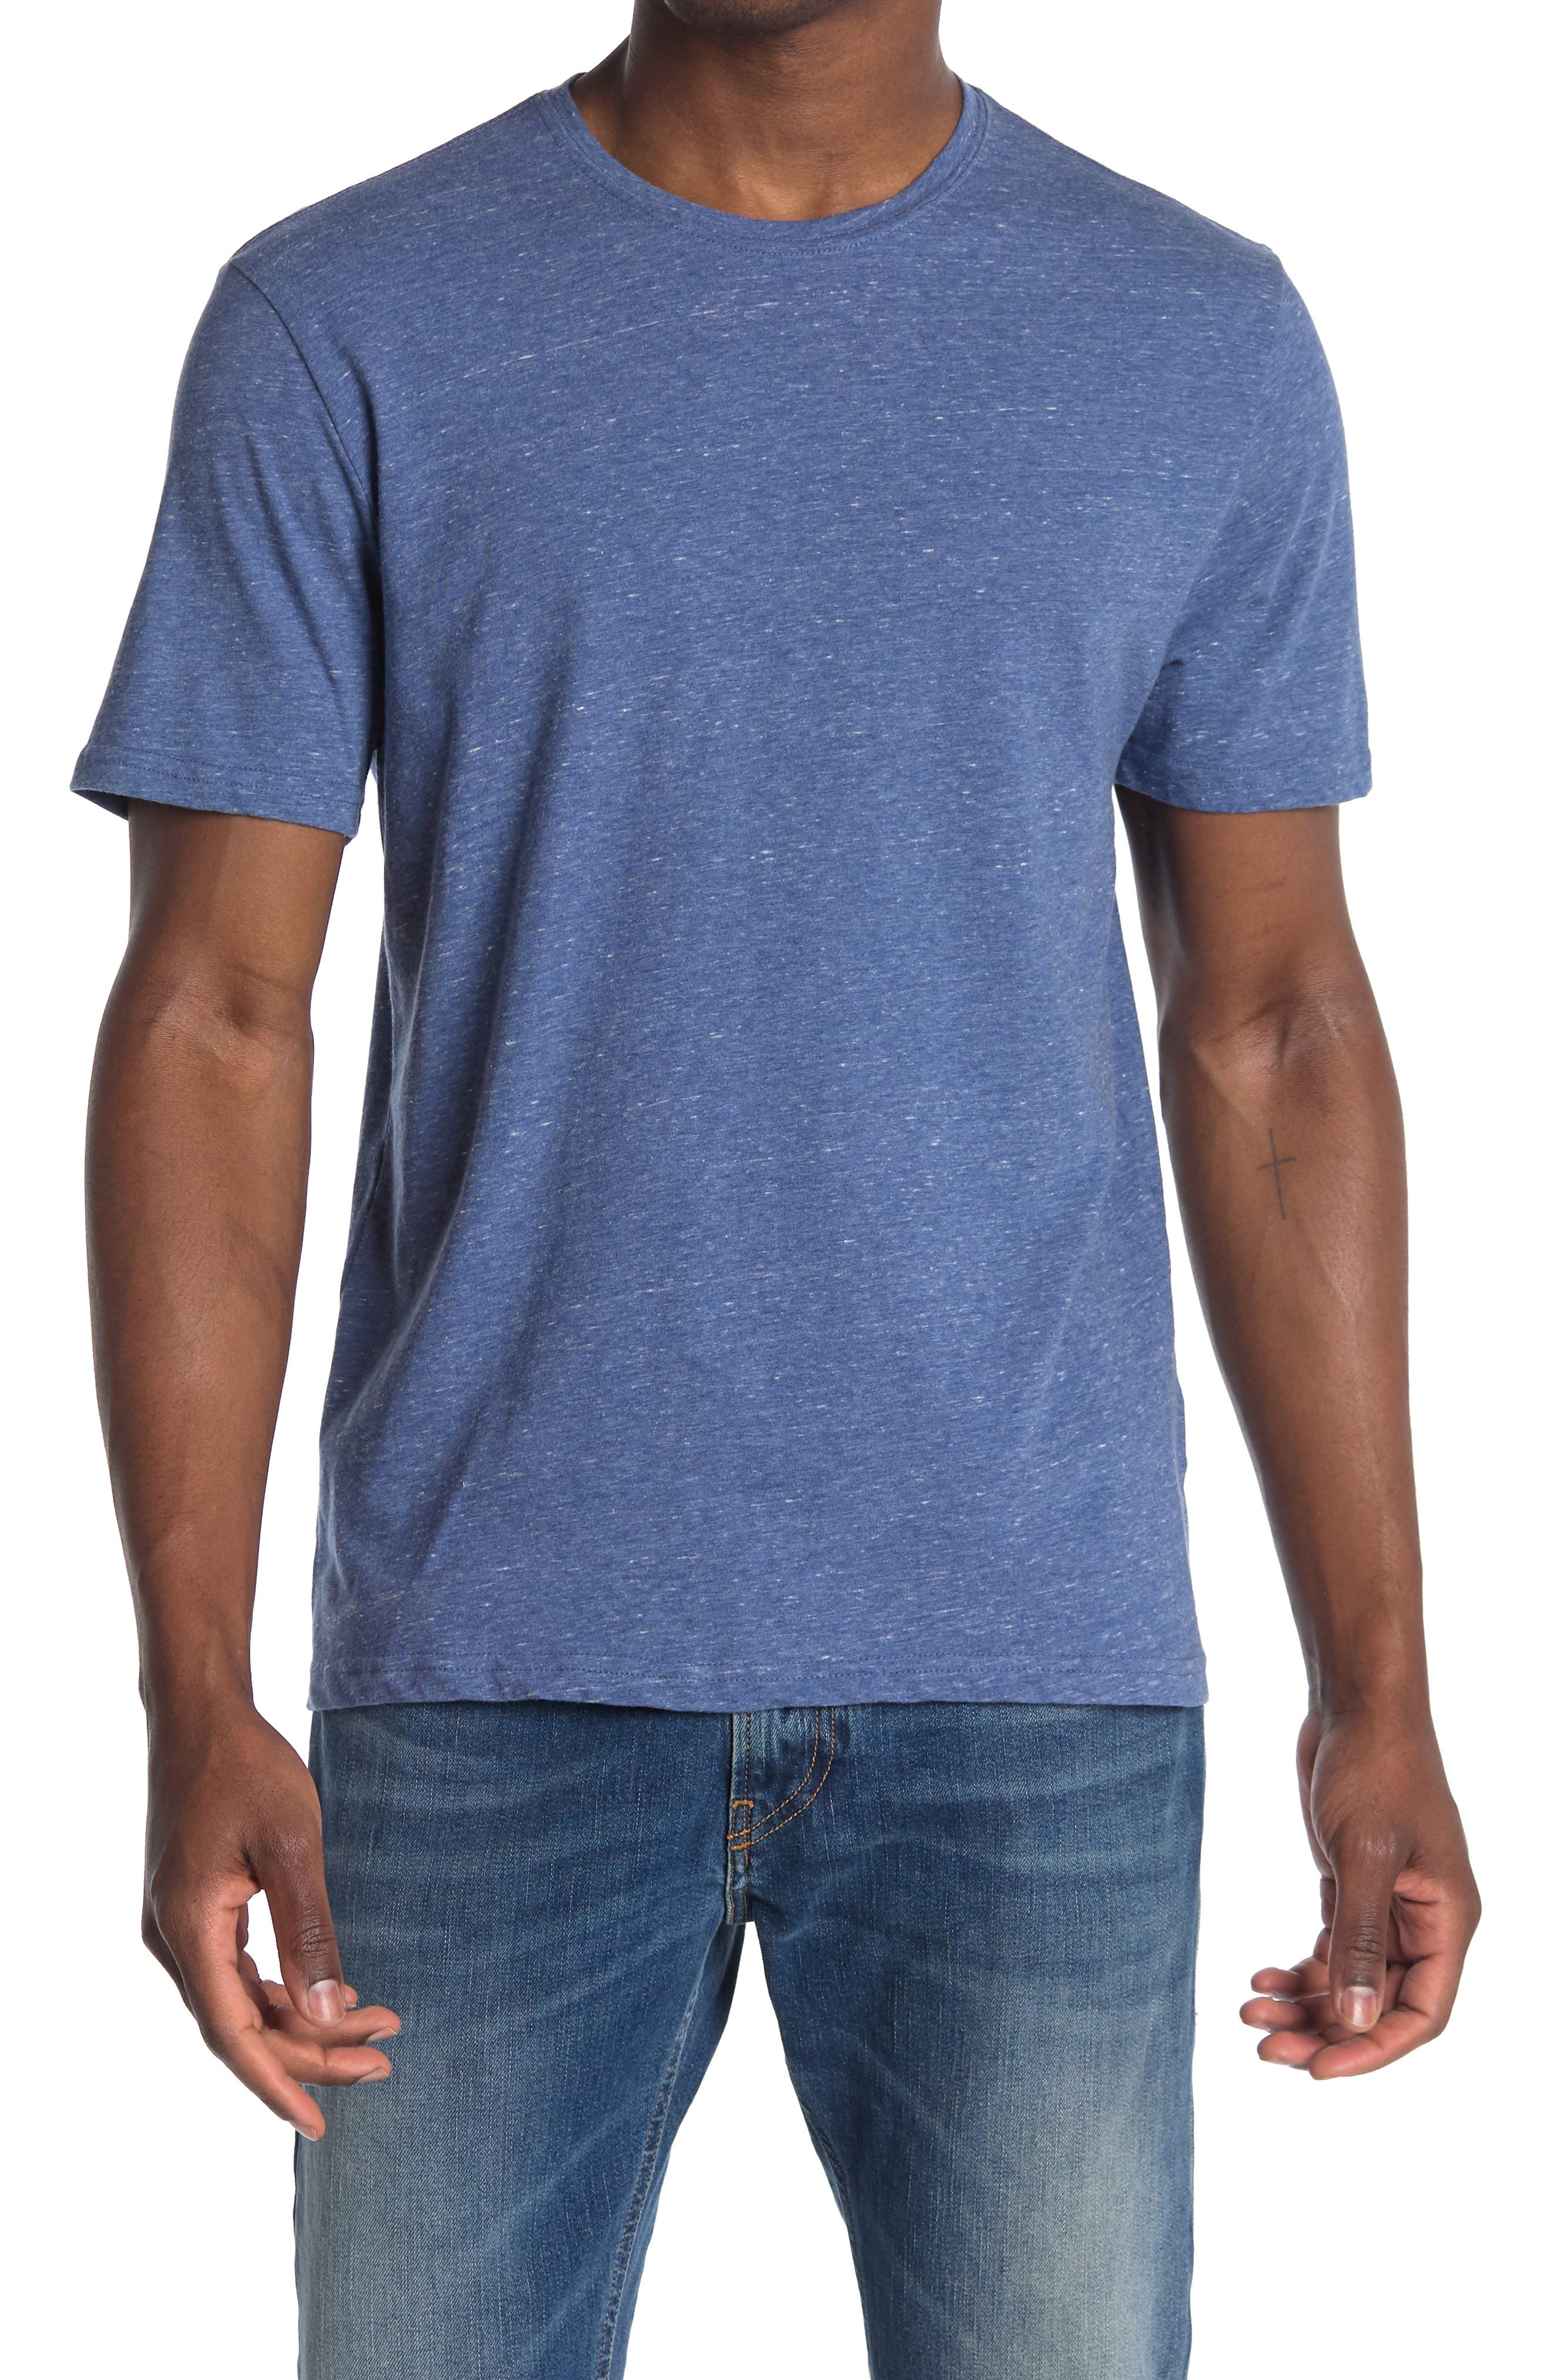 Image of Abound Chill Heathered Crew Neck T-Shirt